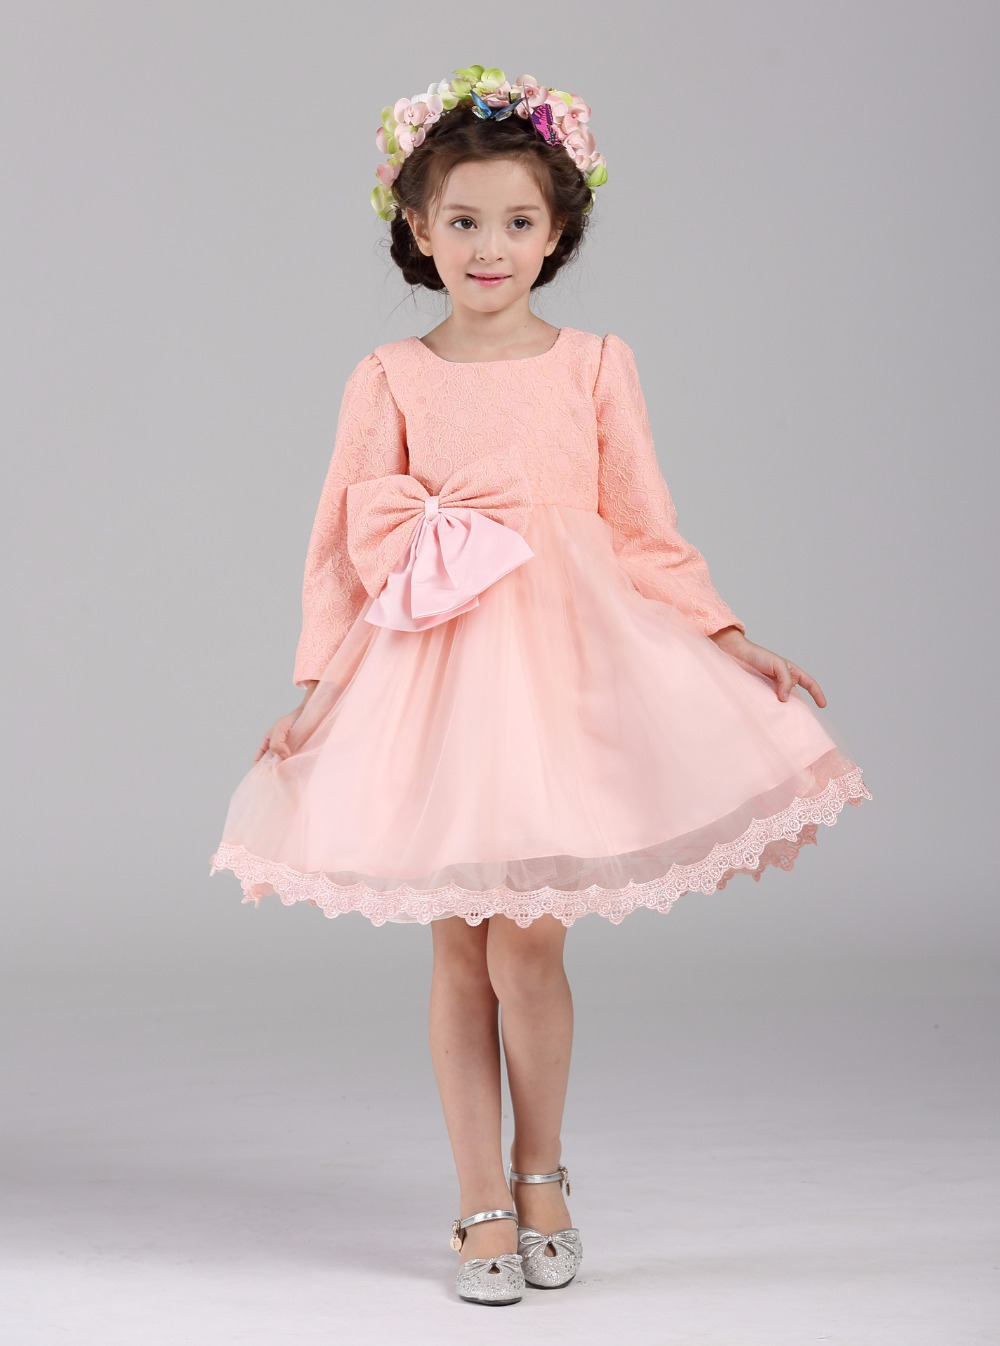 Discover cute and comfortable Girls Long Sleeve Dresses at Hanna Andersson. Our long sleeve dresses come in designs and styles she'll love to wear cpdlp9wivh506.ga Andersson.